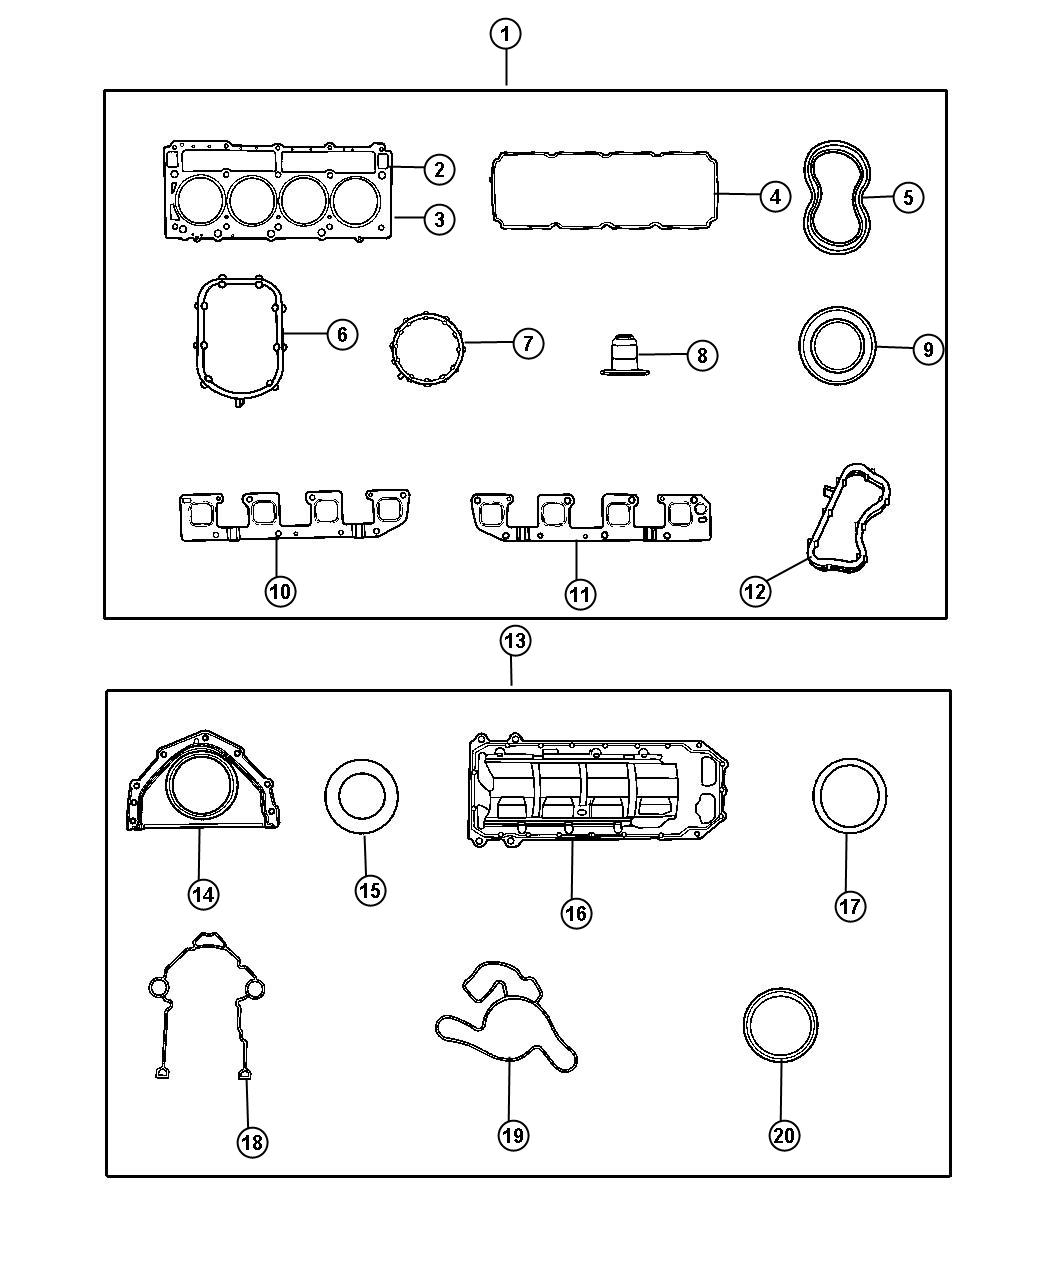 Dodge Ram 1500 Gasket Kit  Gasket Package  Engine  Engine Lower  Packages  Block  Cylinder